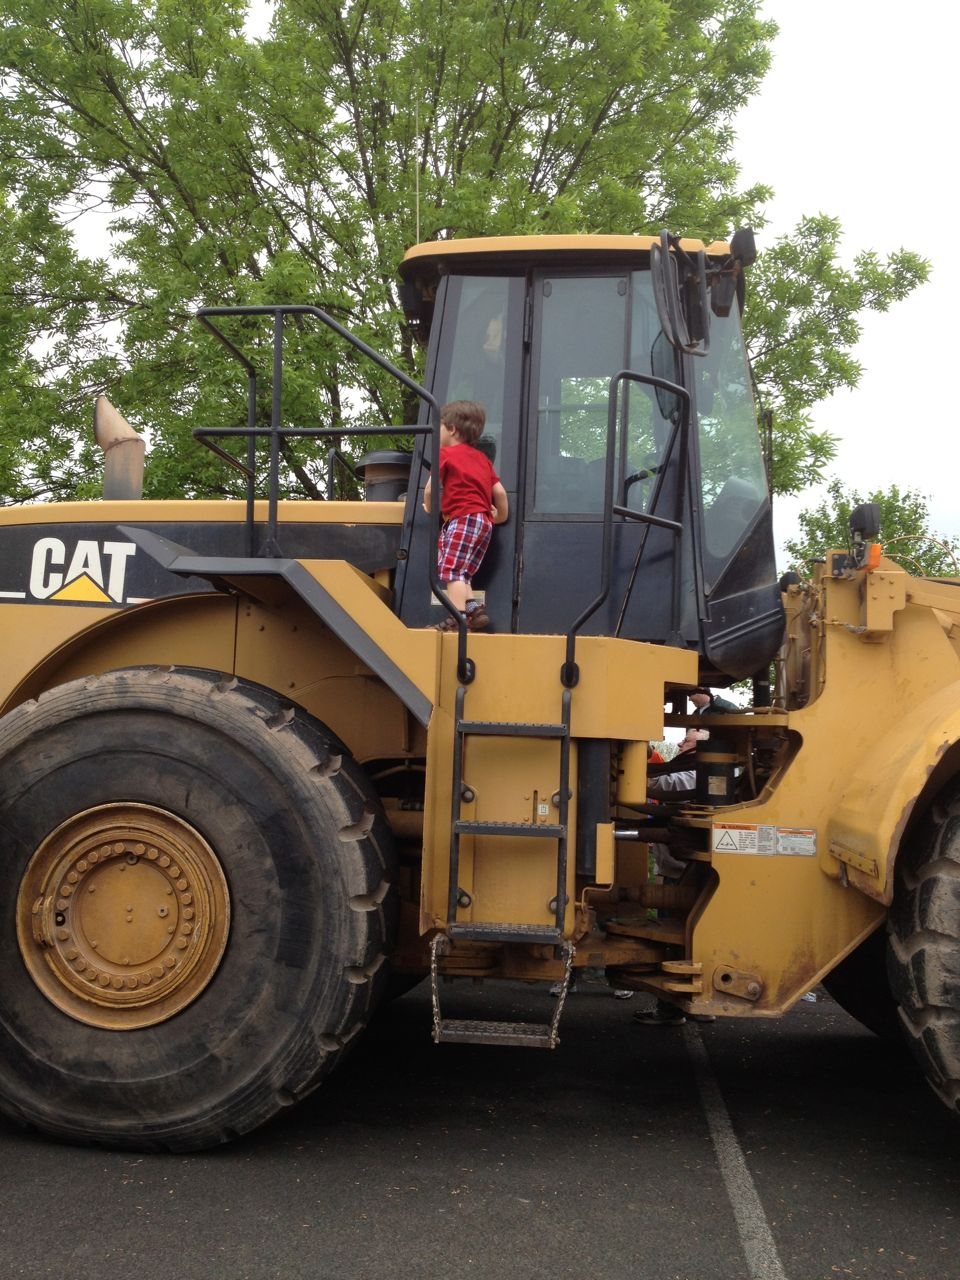 Adam on the bulldozer